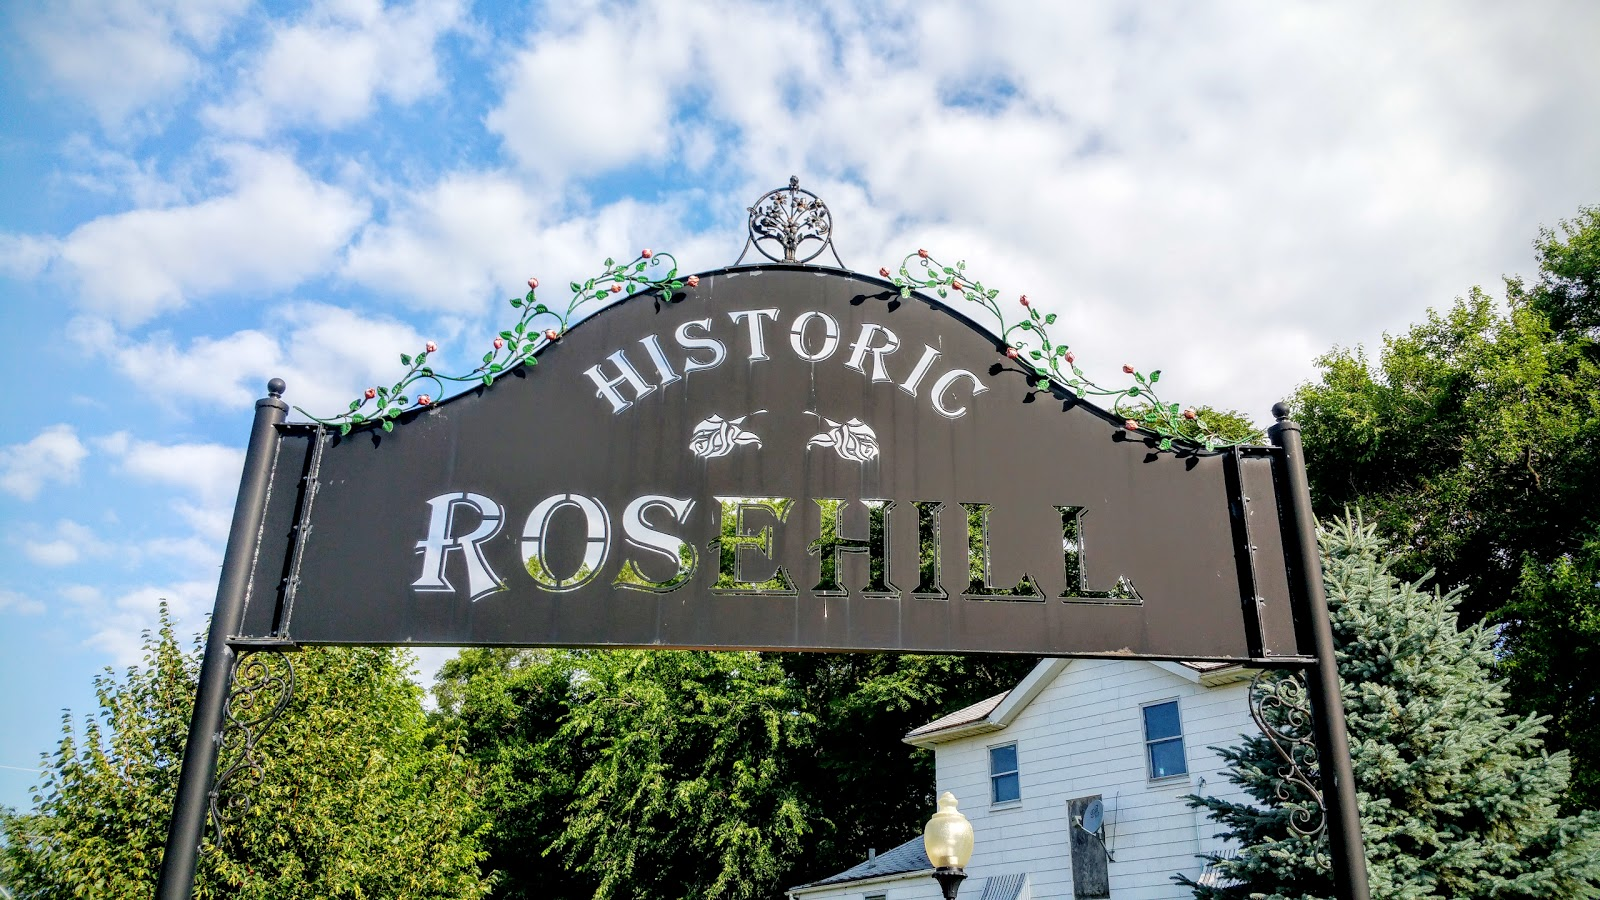 History and culture by bicycle geocaching june 20 2016 for Rose city motors michigan